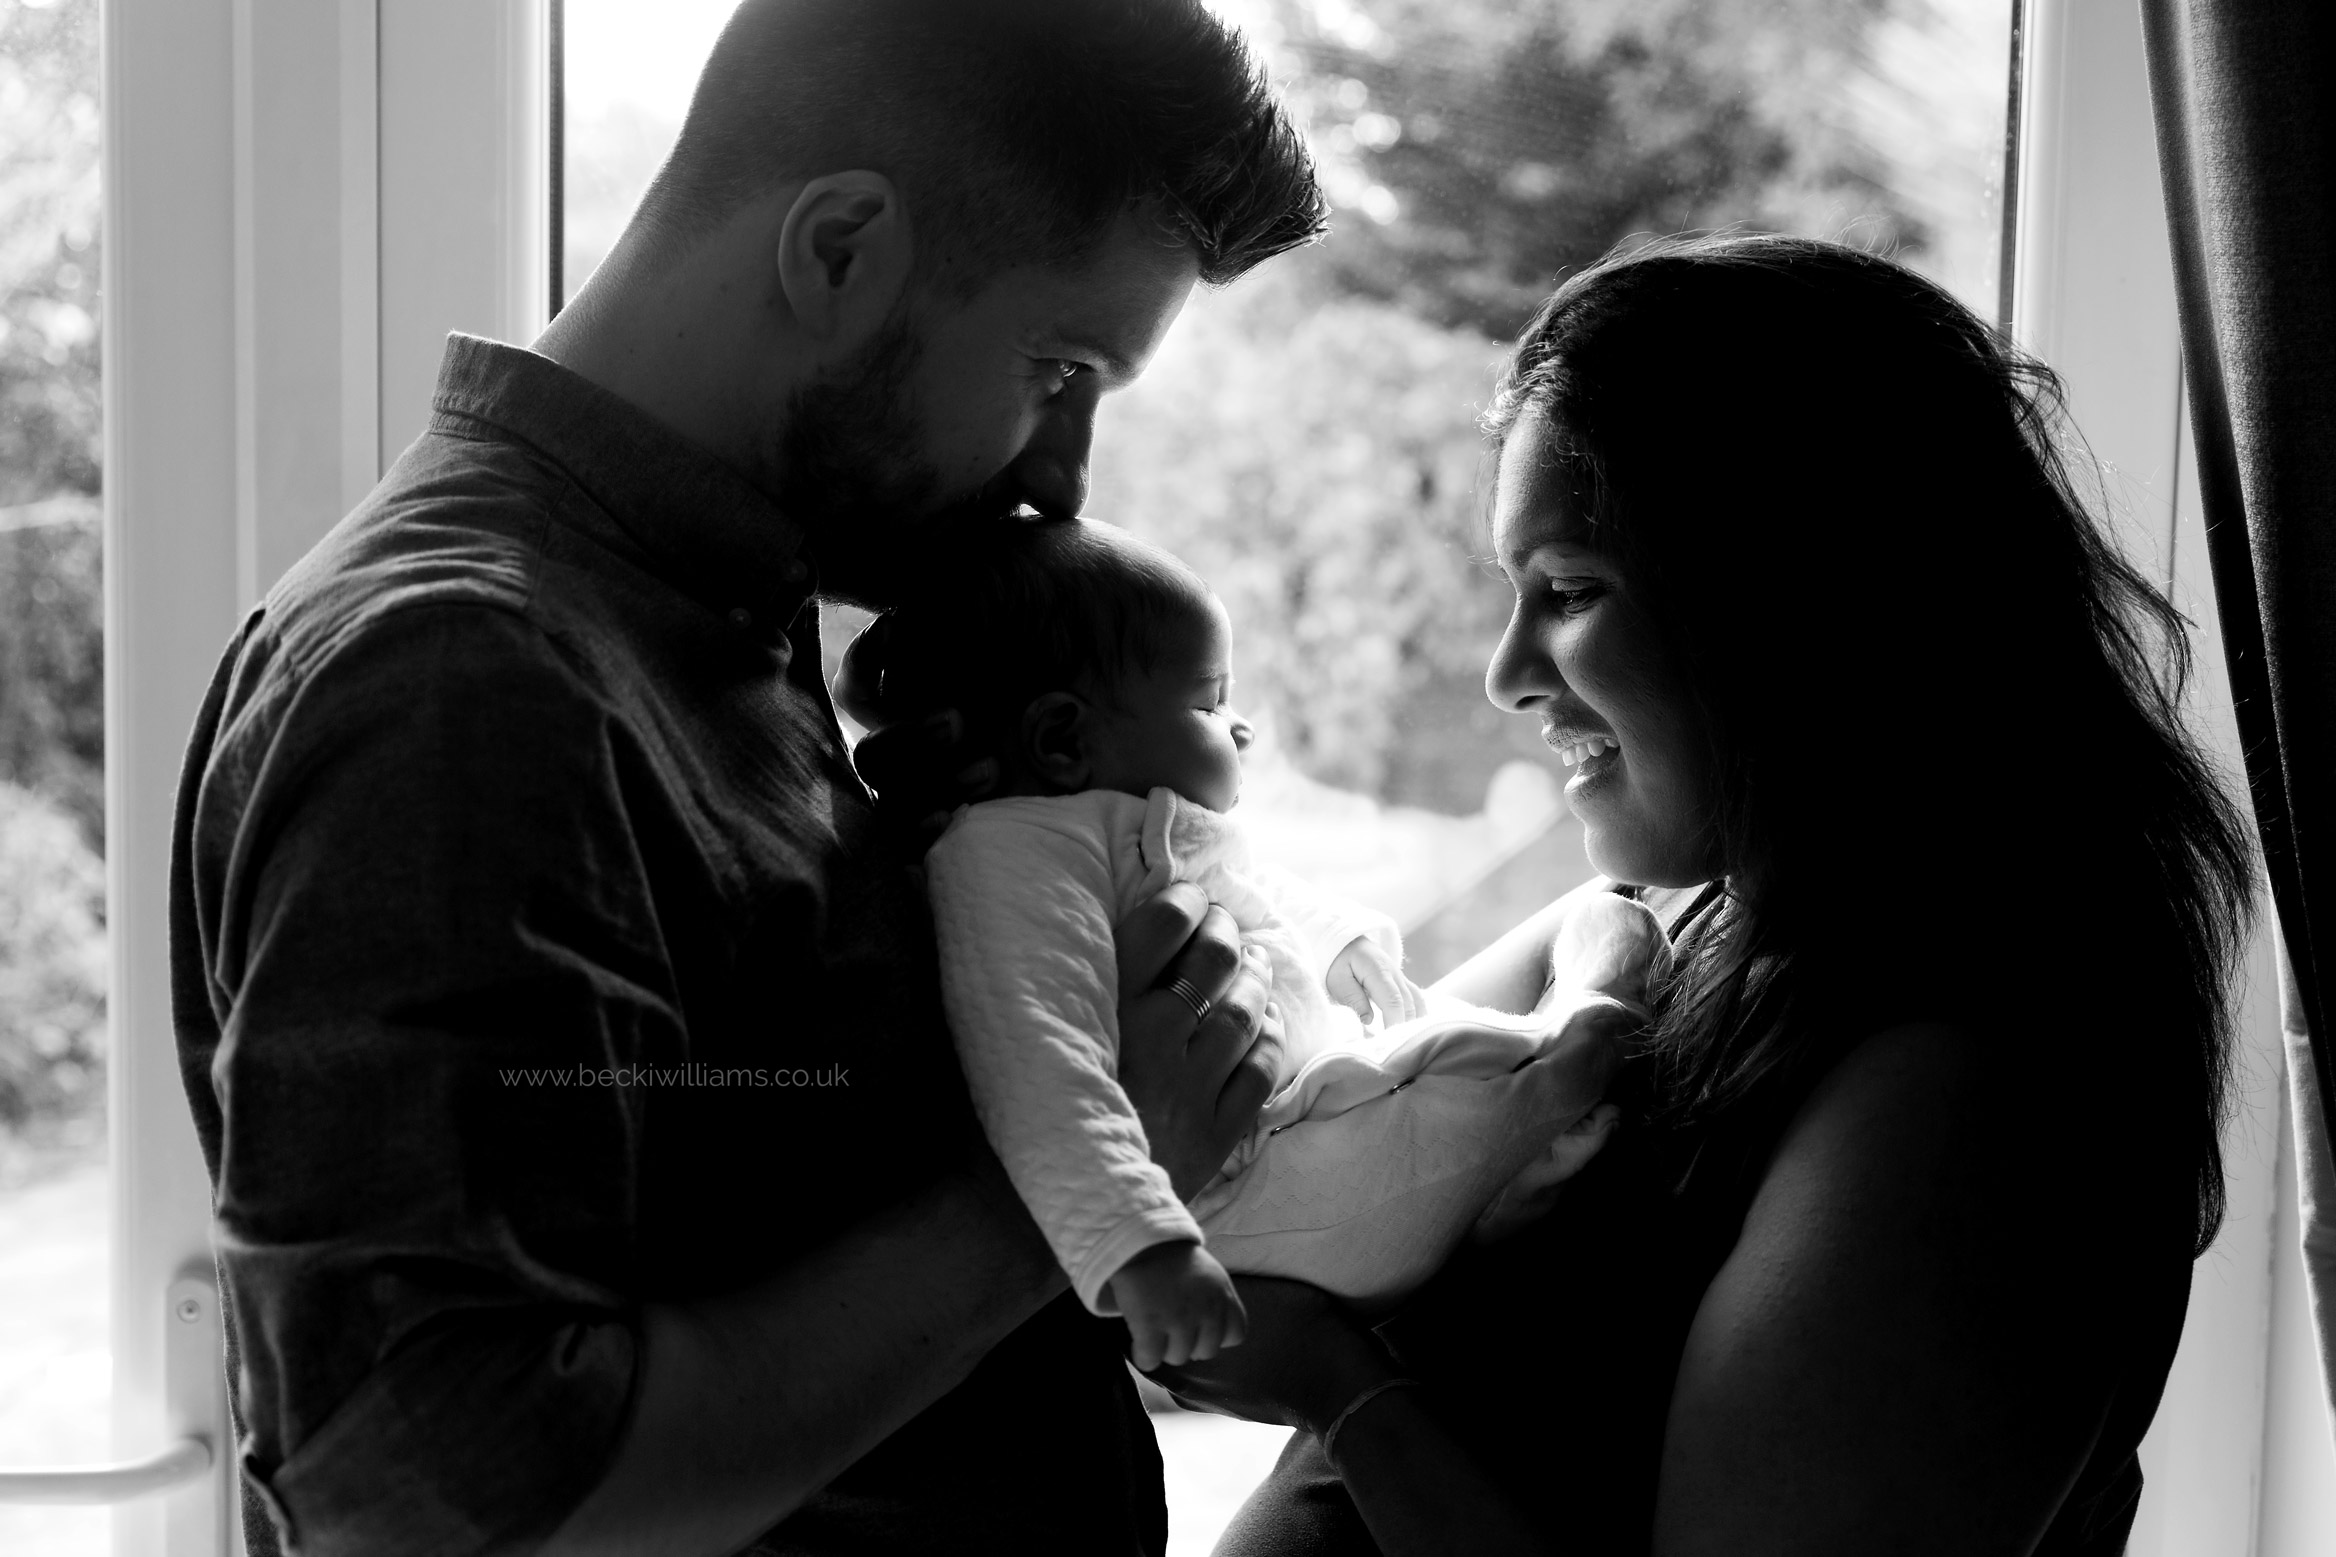 new parents stand in front of a window holding their newborn baby girl between them